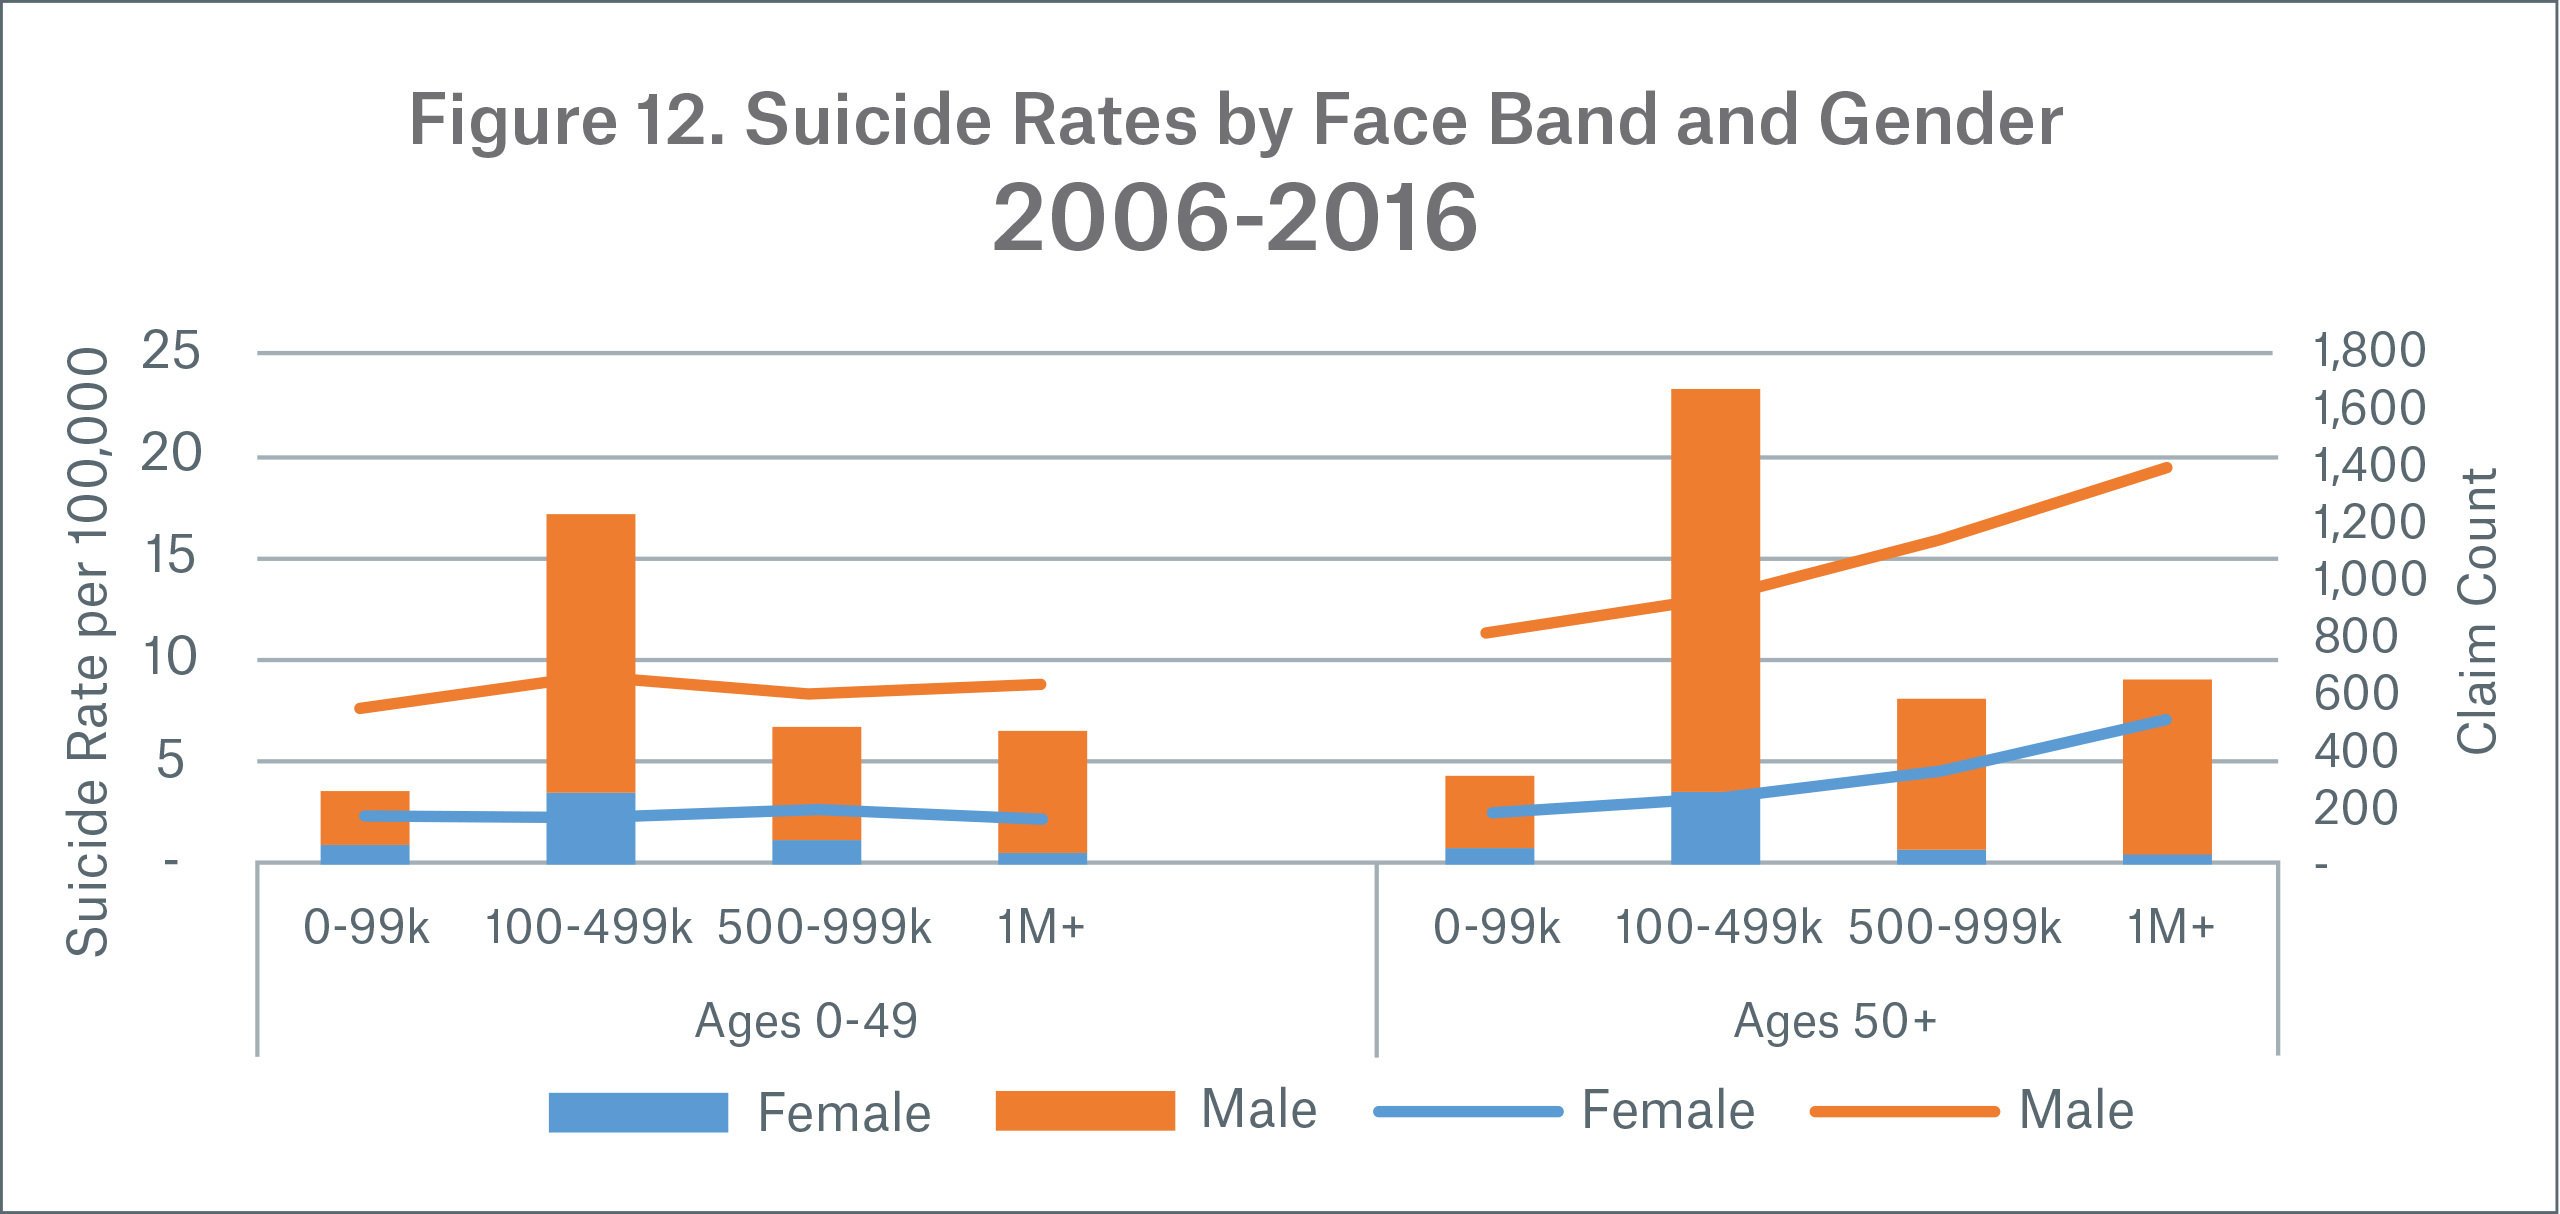 Figure 12 Image Suicide Rates by Face Band and Gender